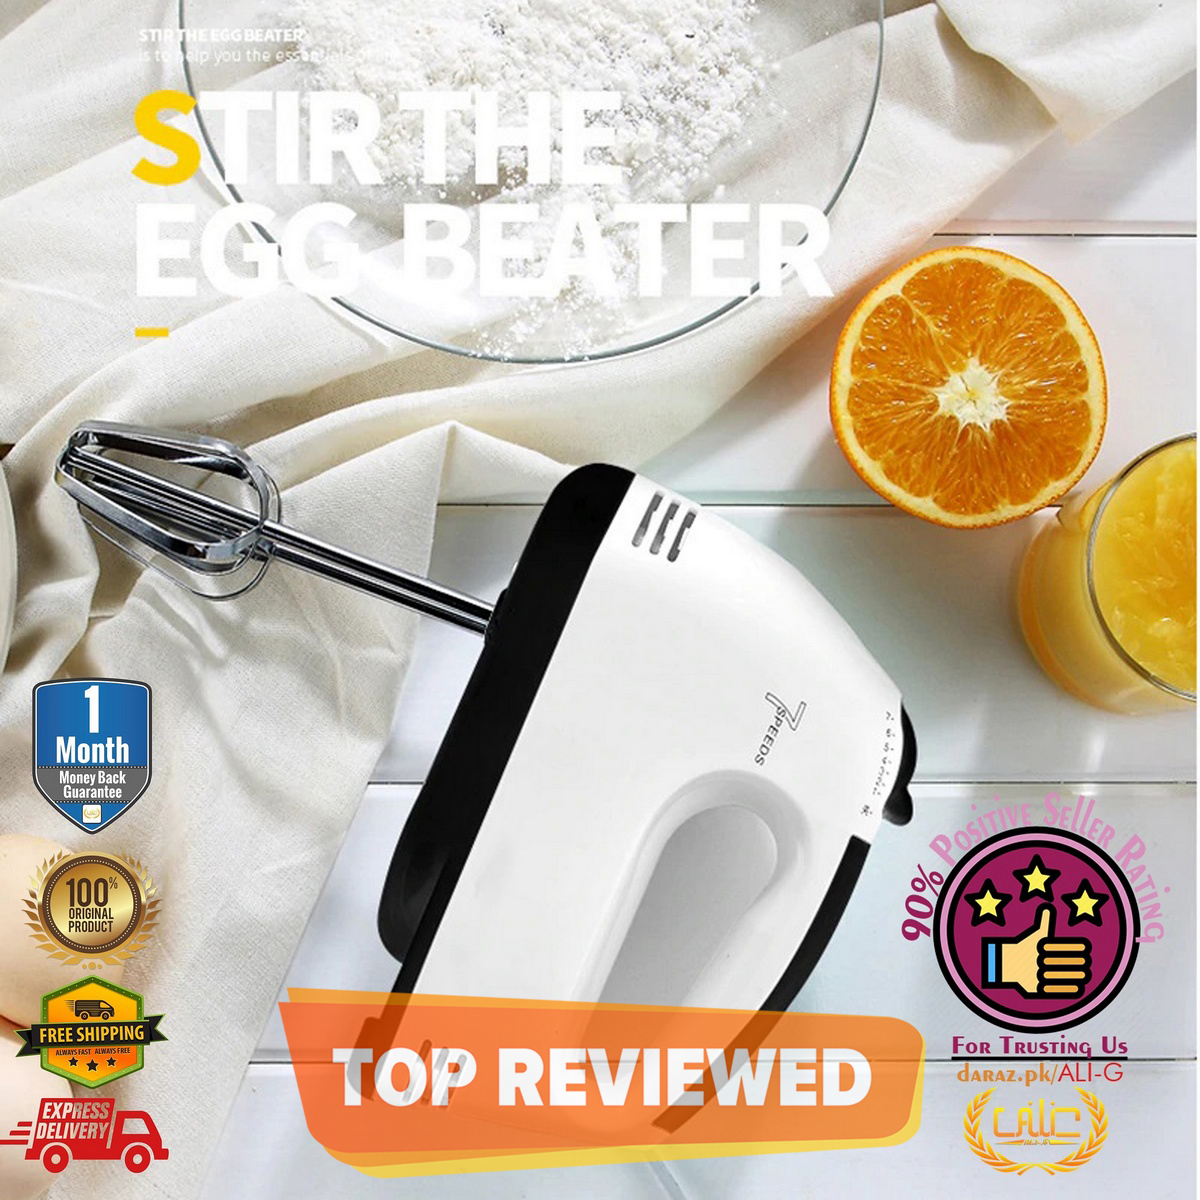 FLASH SALE Egg Beater Machine Electric 7 Speed Hand Mixer Cake Baking Home Handheld Small Automatic Cream Hand Blender Kenwod - HM133 - Scarlet